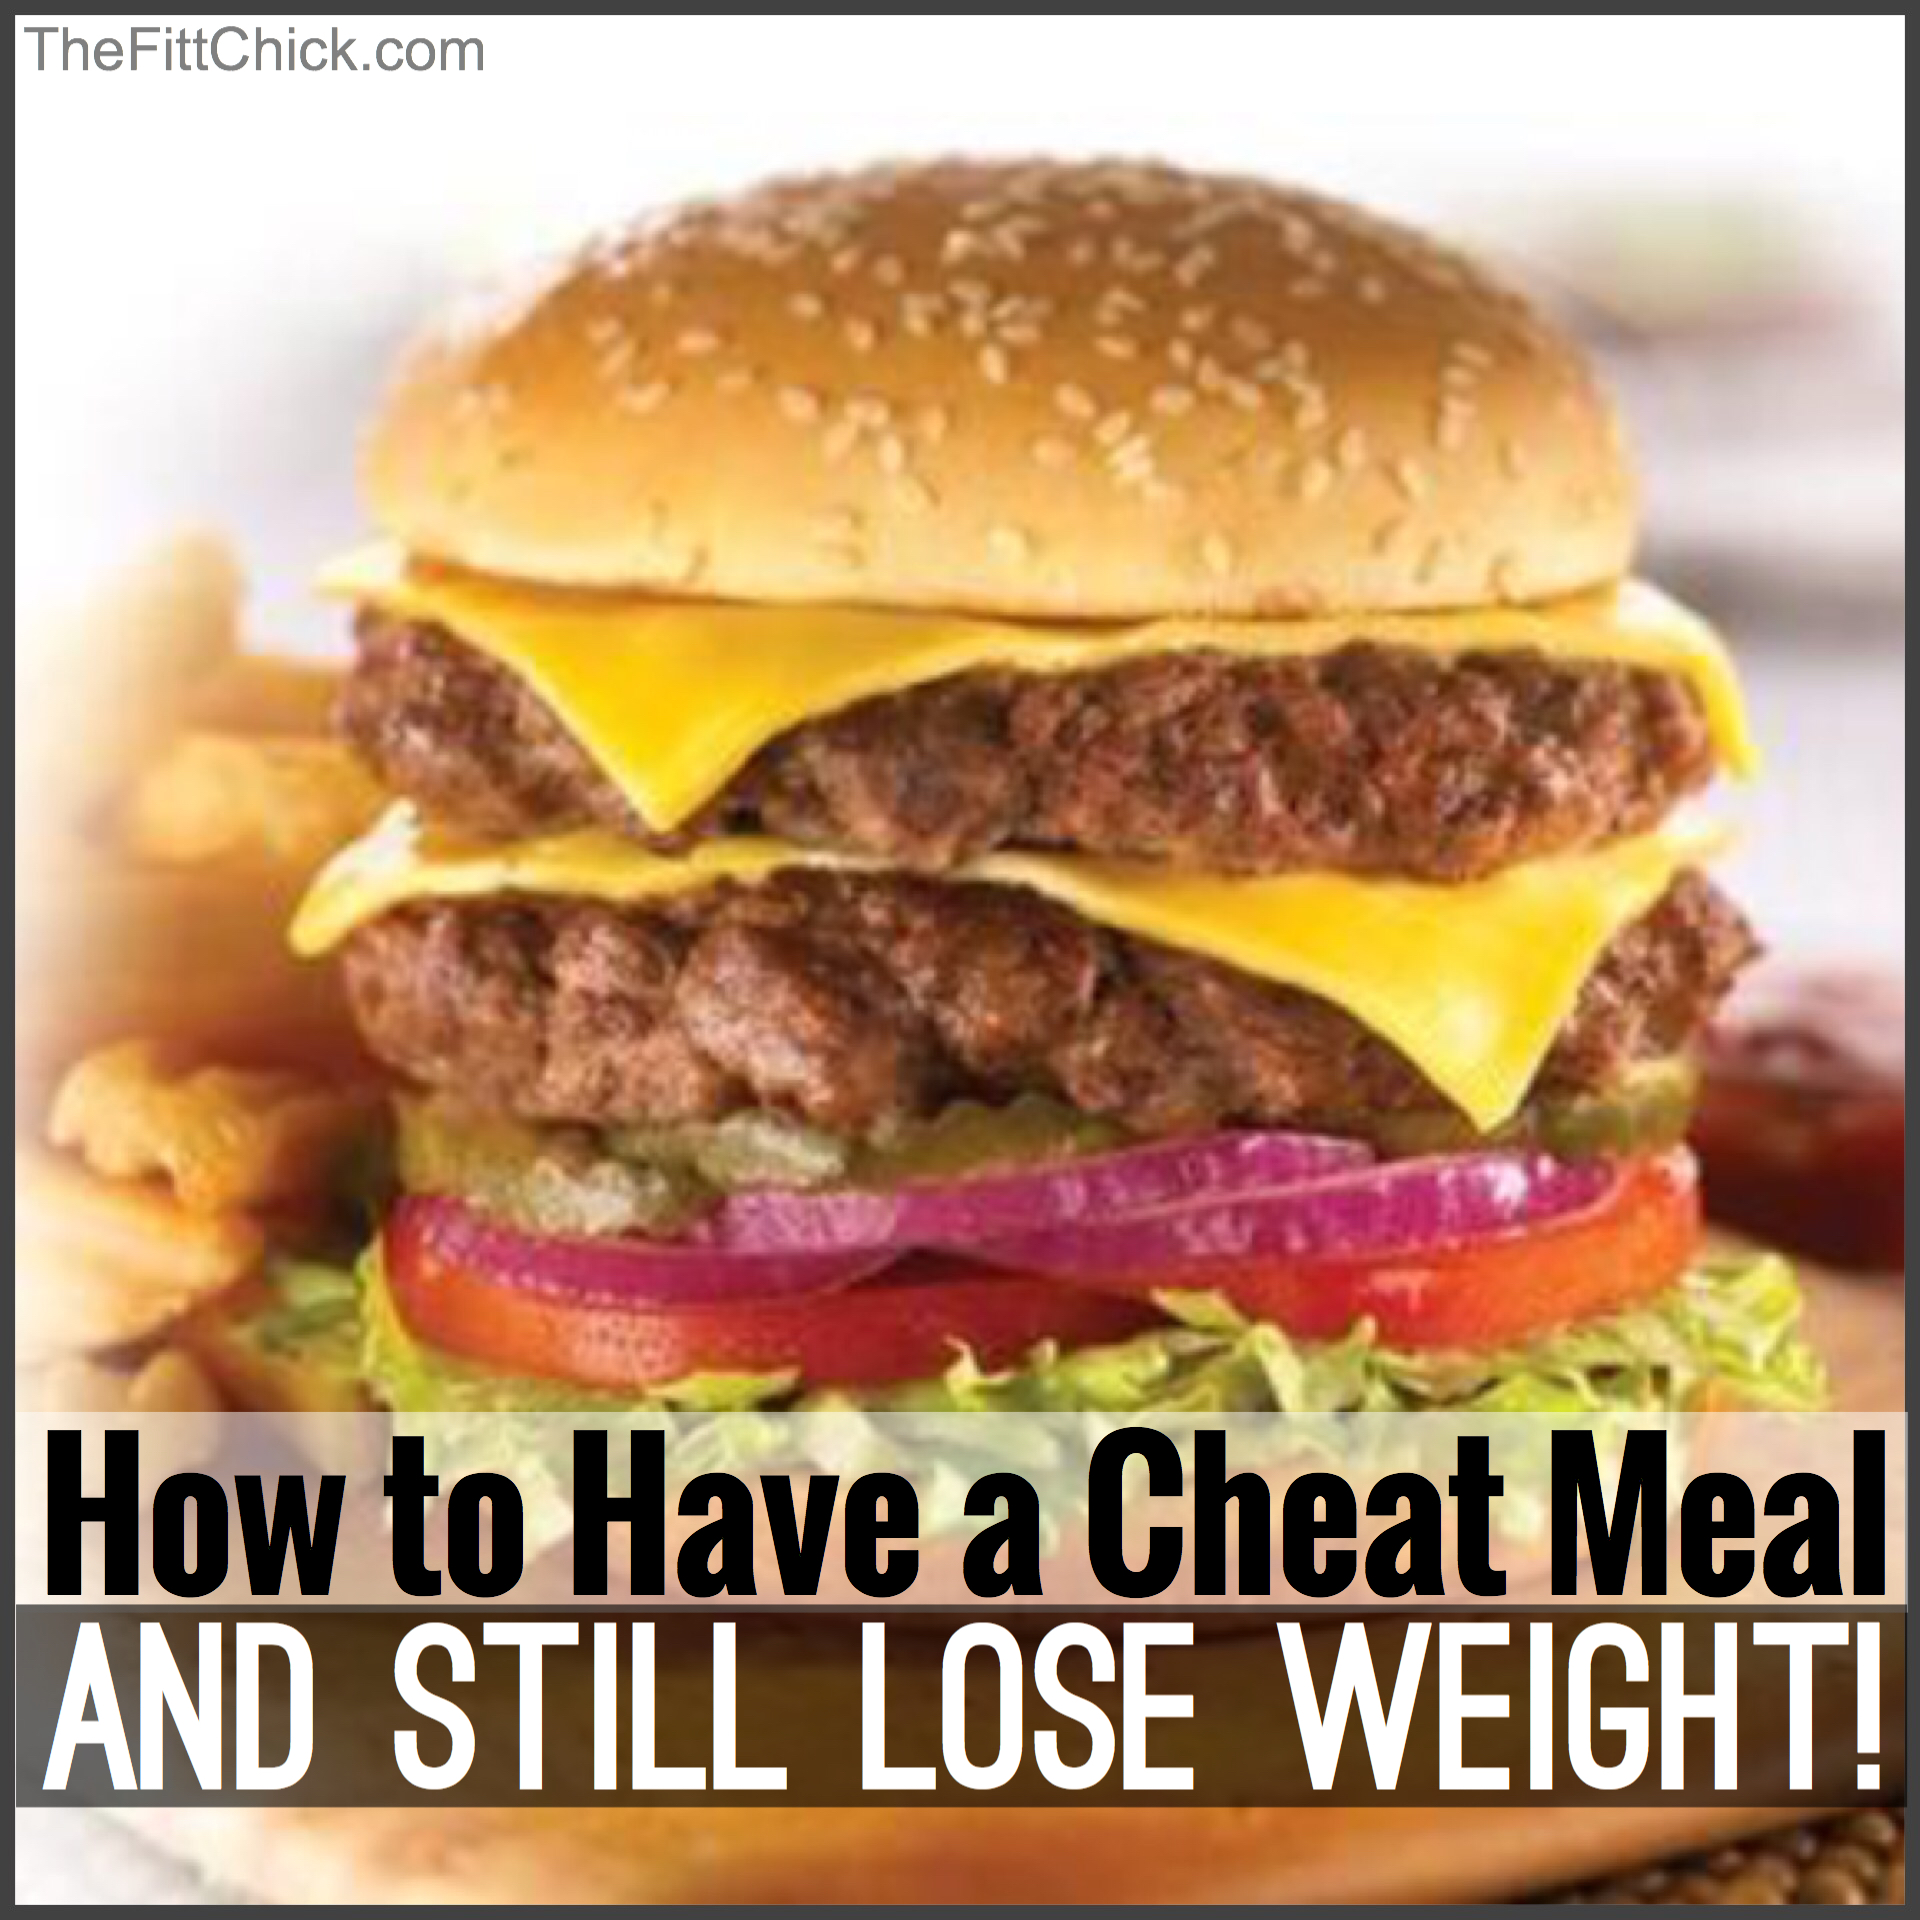 How to Lose Belly Fat - The cheat sheet to help you lose